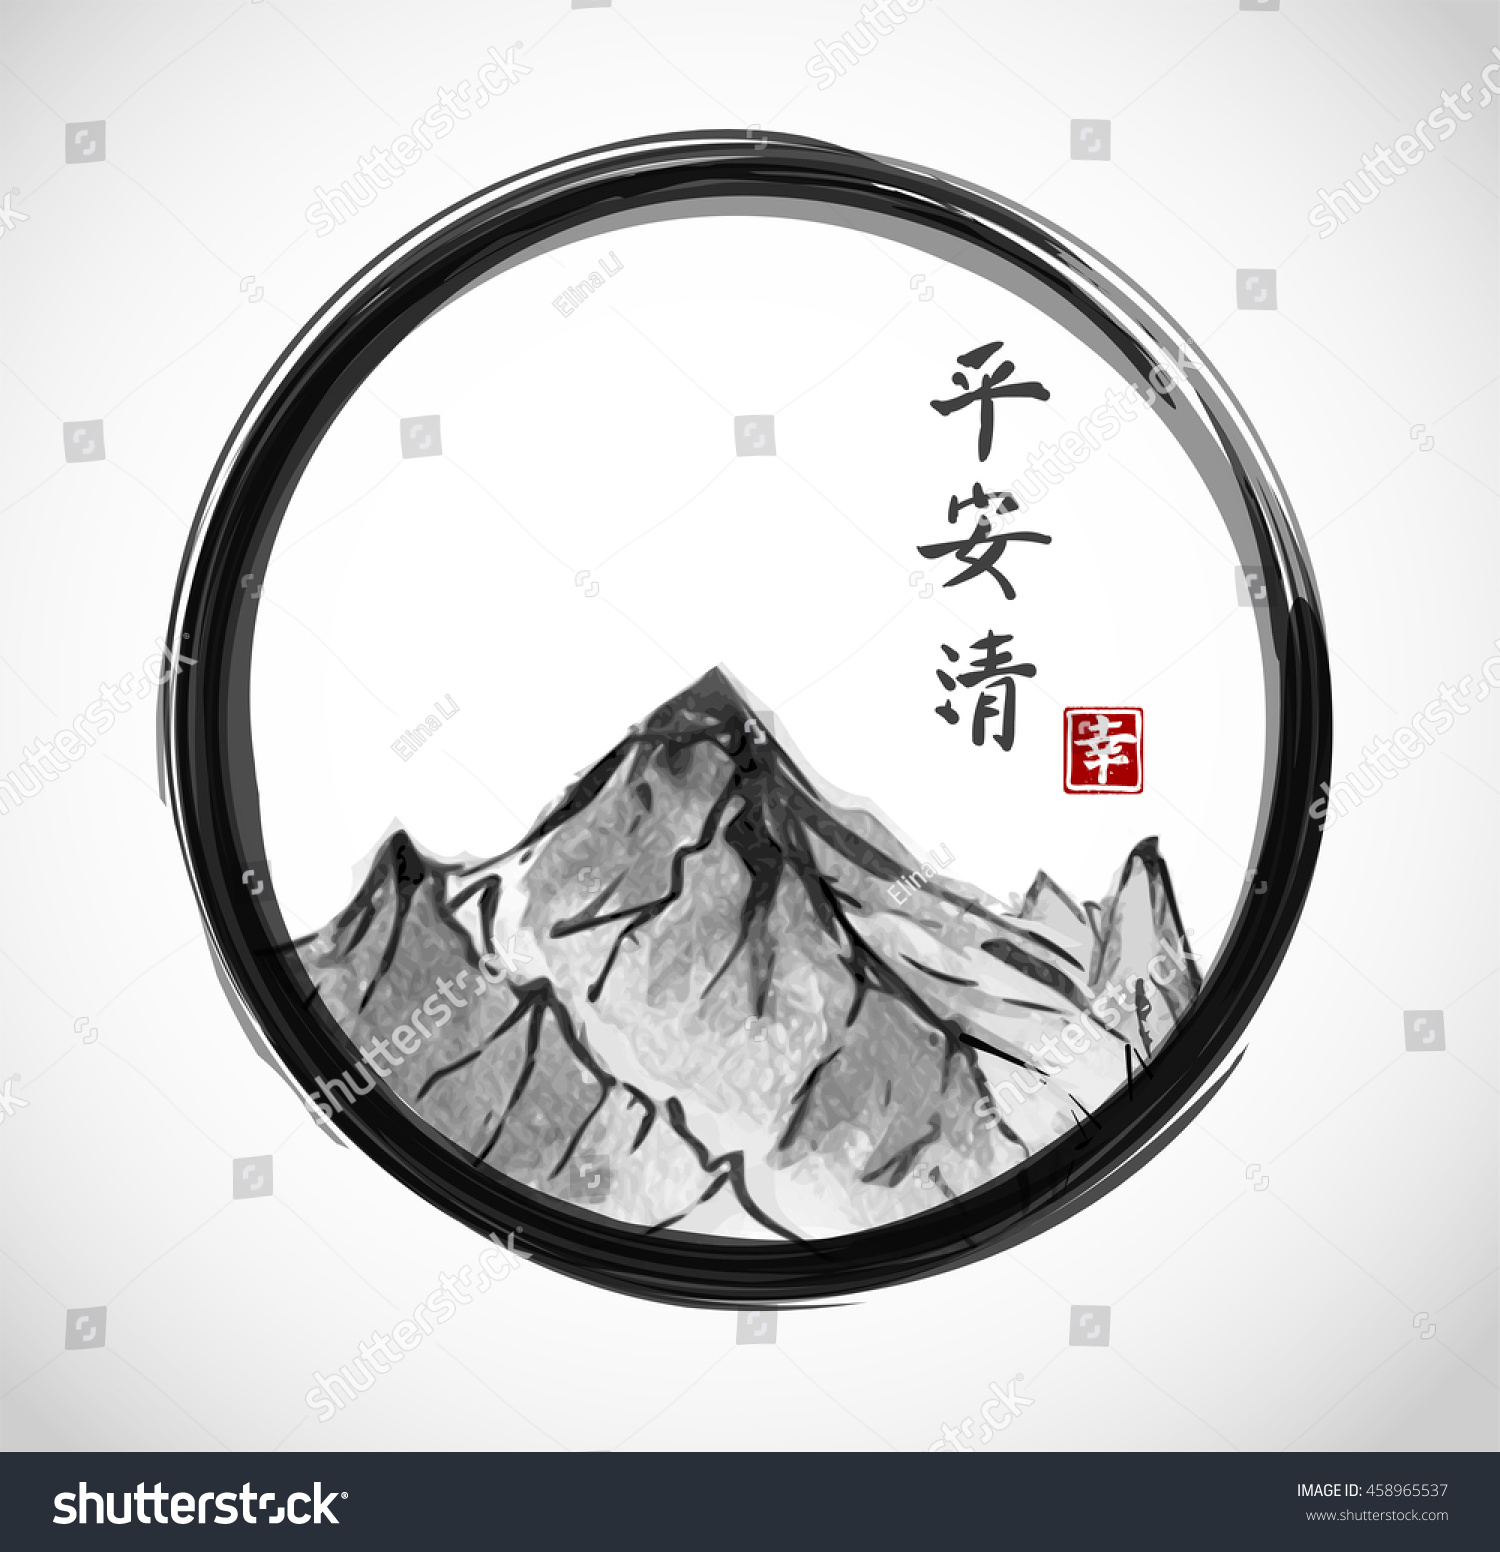 Mountains hand drawn ink black enso stock vector 458965537 mountains hand drawn with ink in black enso zen circle contains hieroglyphs peace biocorpaavc Image collections